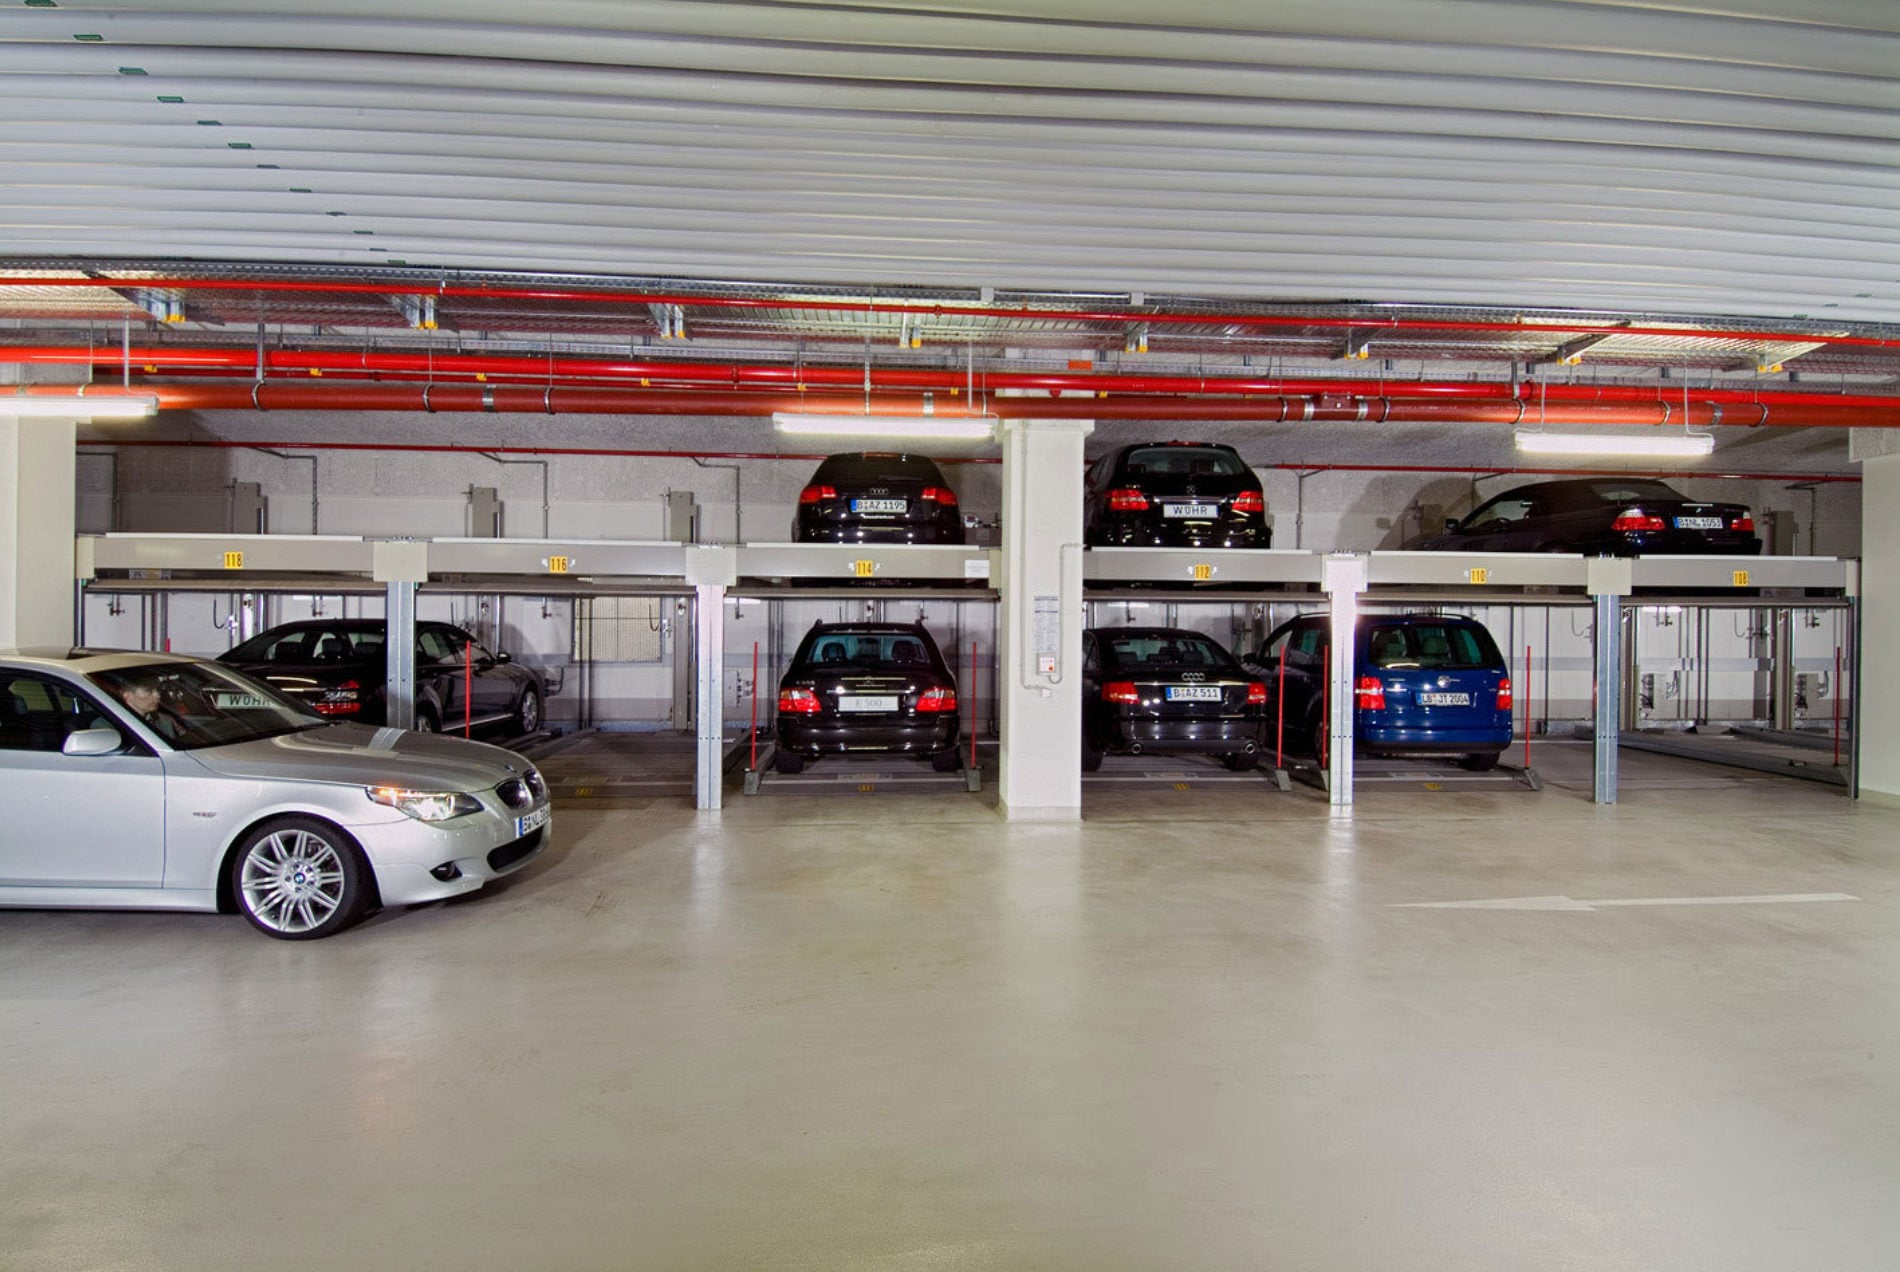 Carparkers Idee 2A